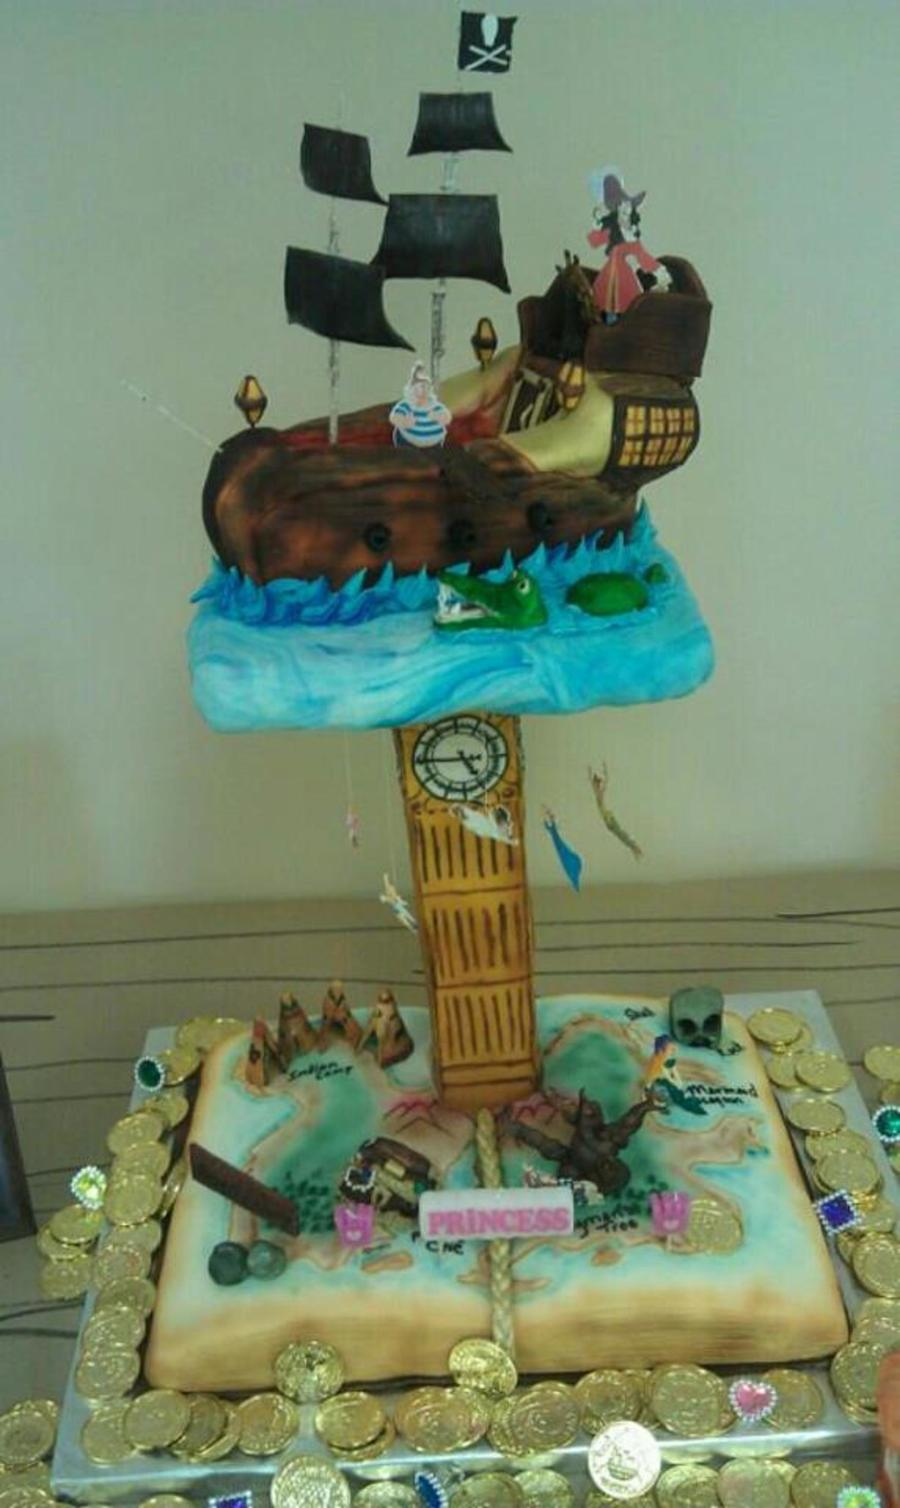 Peter Pan Pirate Ship Cake on Cake Central